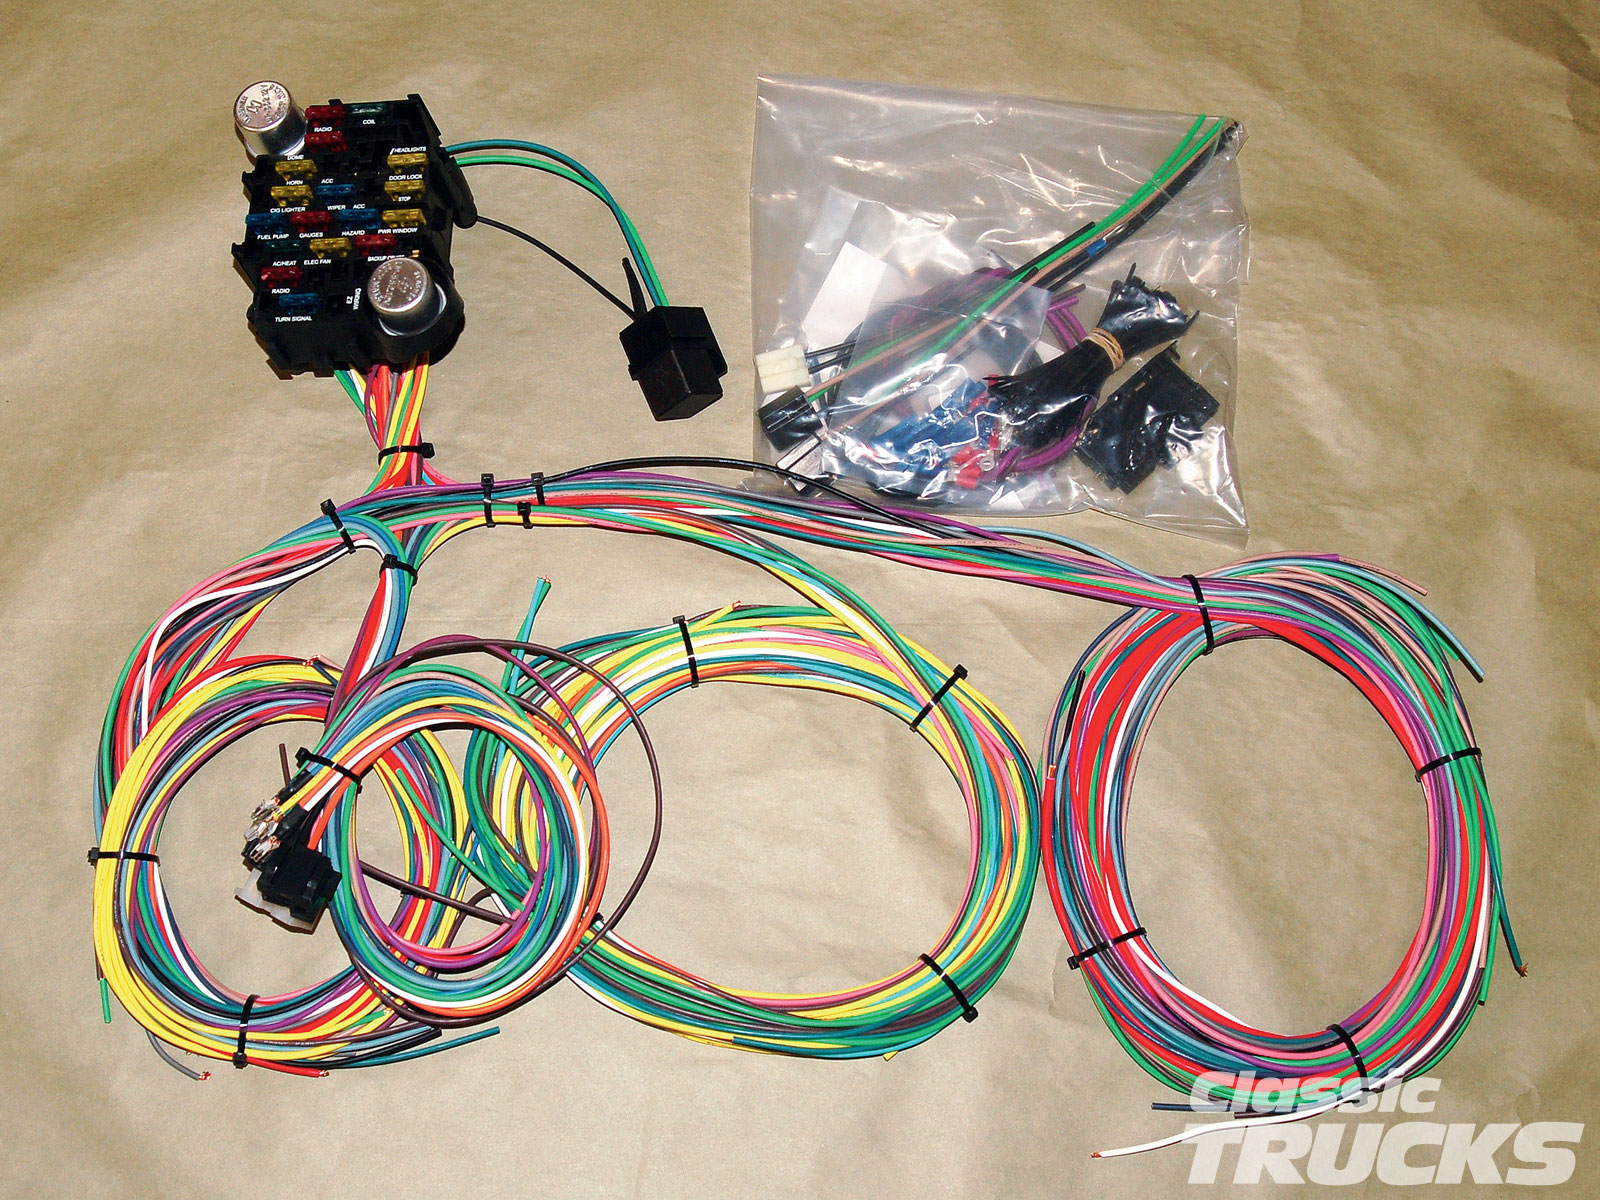 1010clt 02 o aftermarket wiring harness install kit?resize=640%2C480 how much does a wire harness cost to replace hobbiesxstyle how much does it cost to replace a wiring harness at pacquiaovsvargaslive.co